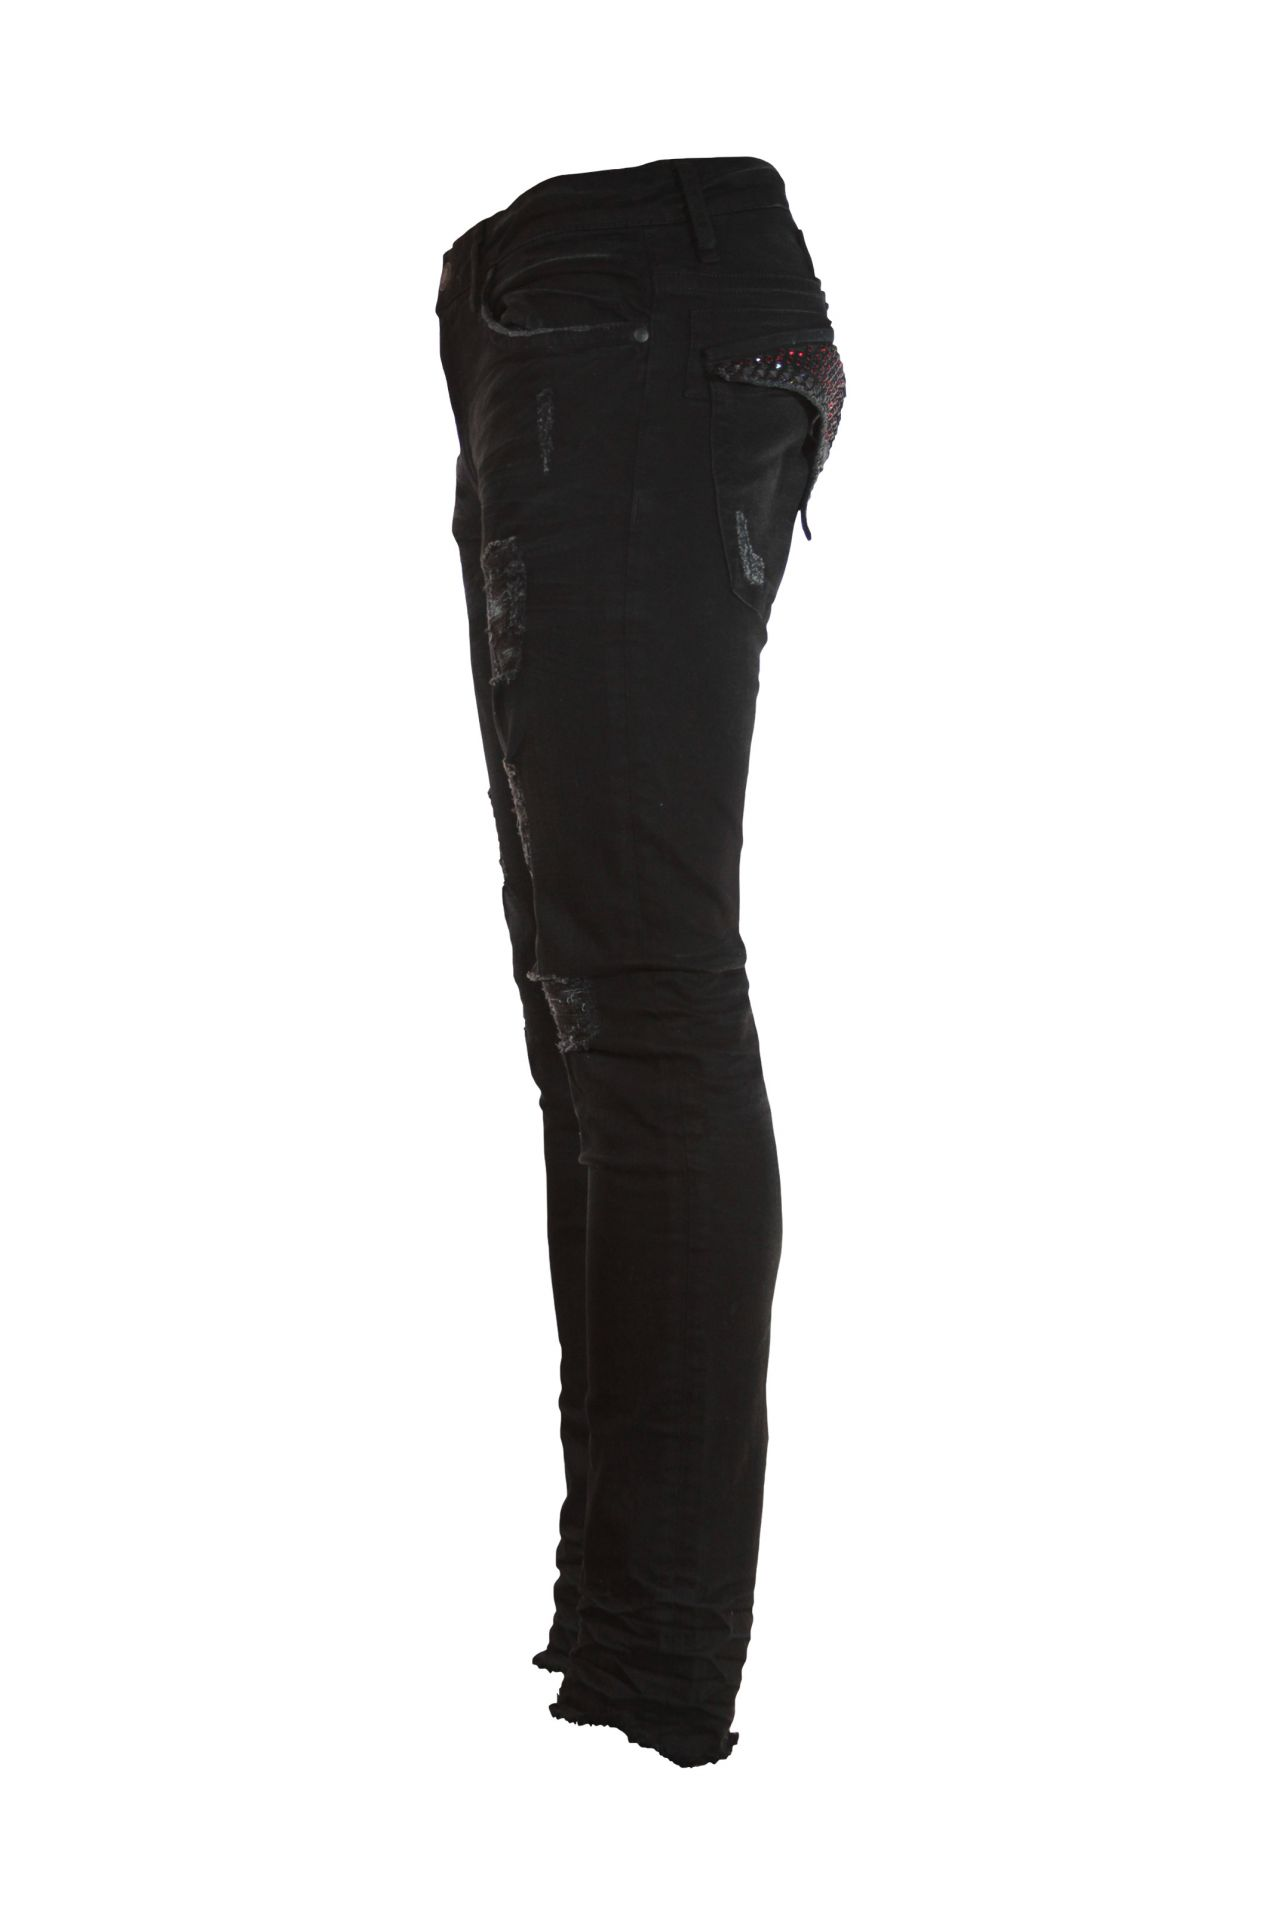 SKINNY JEAN IN F_UP BLACK WITH BLACK DIAMOND AND RED SW